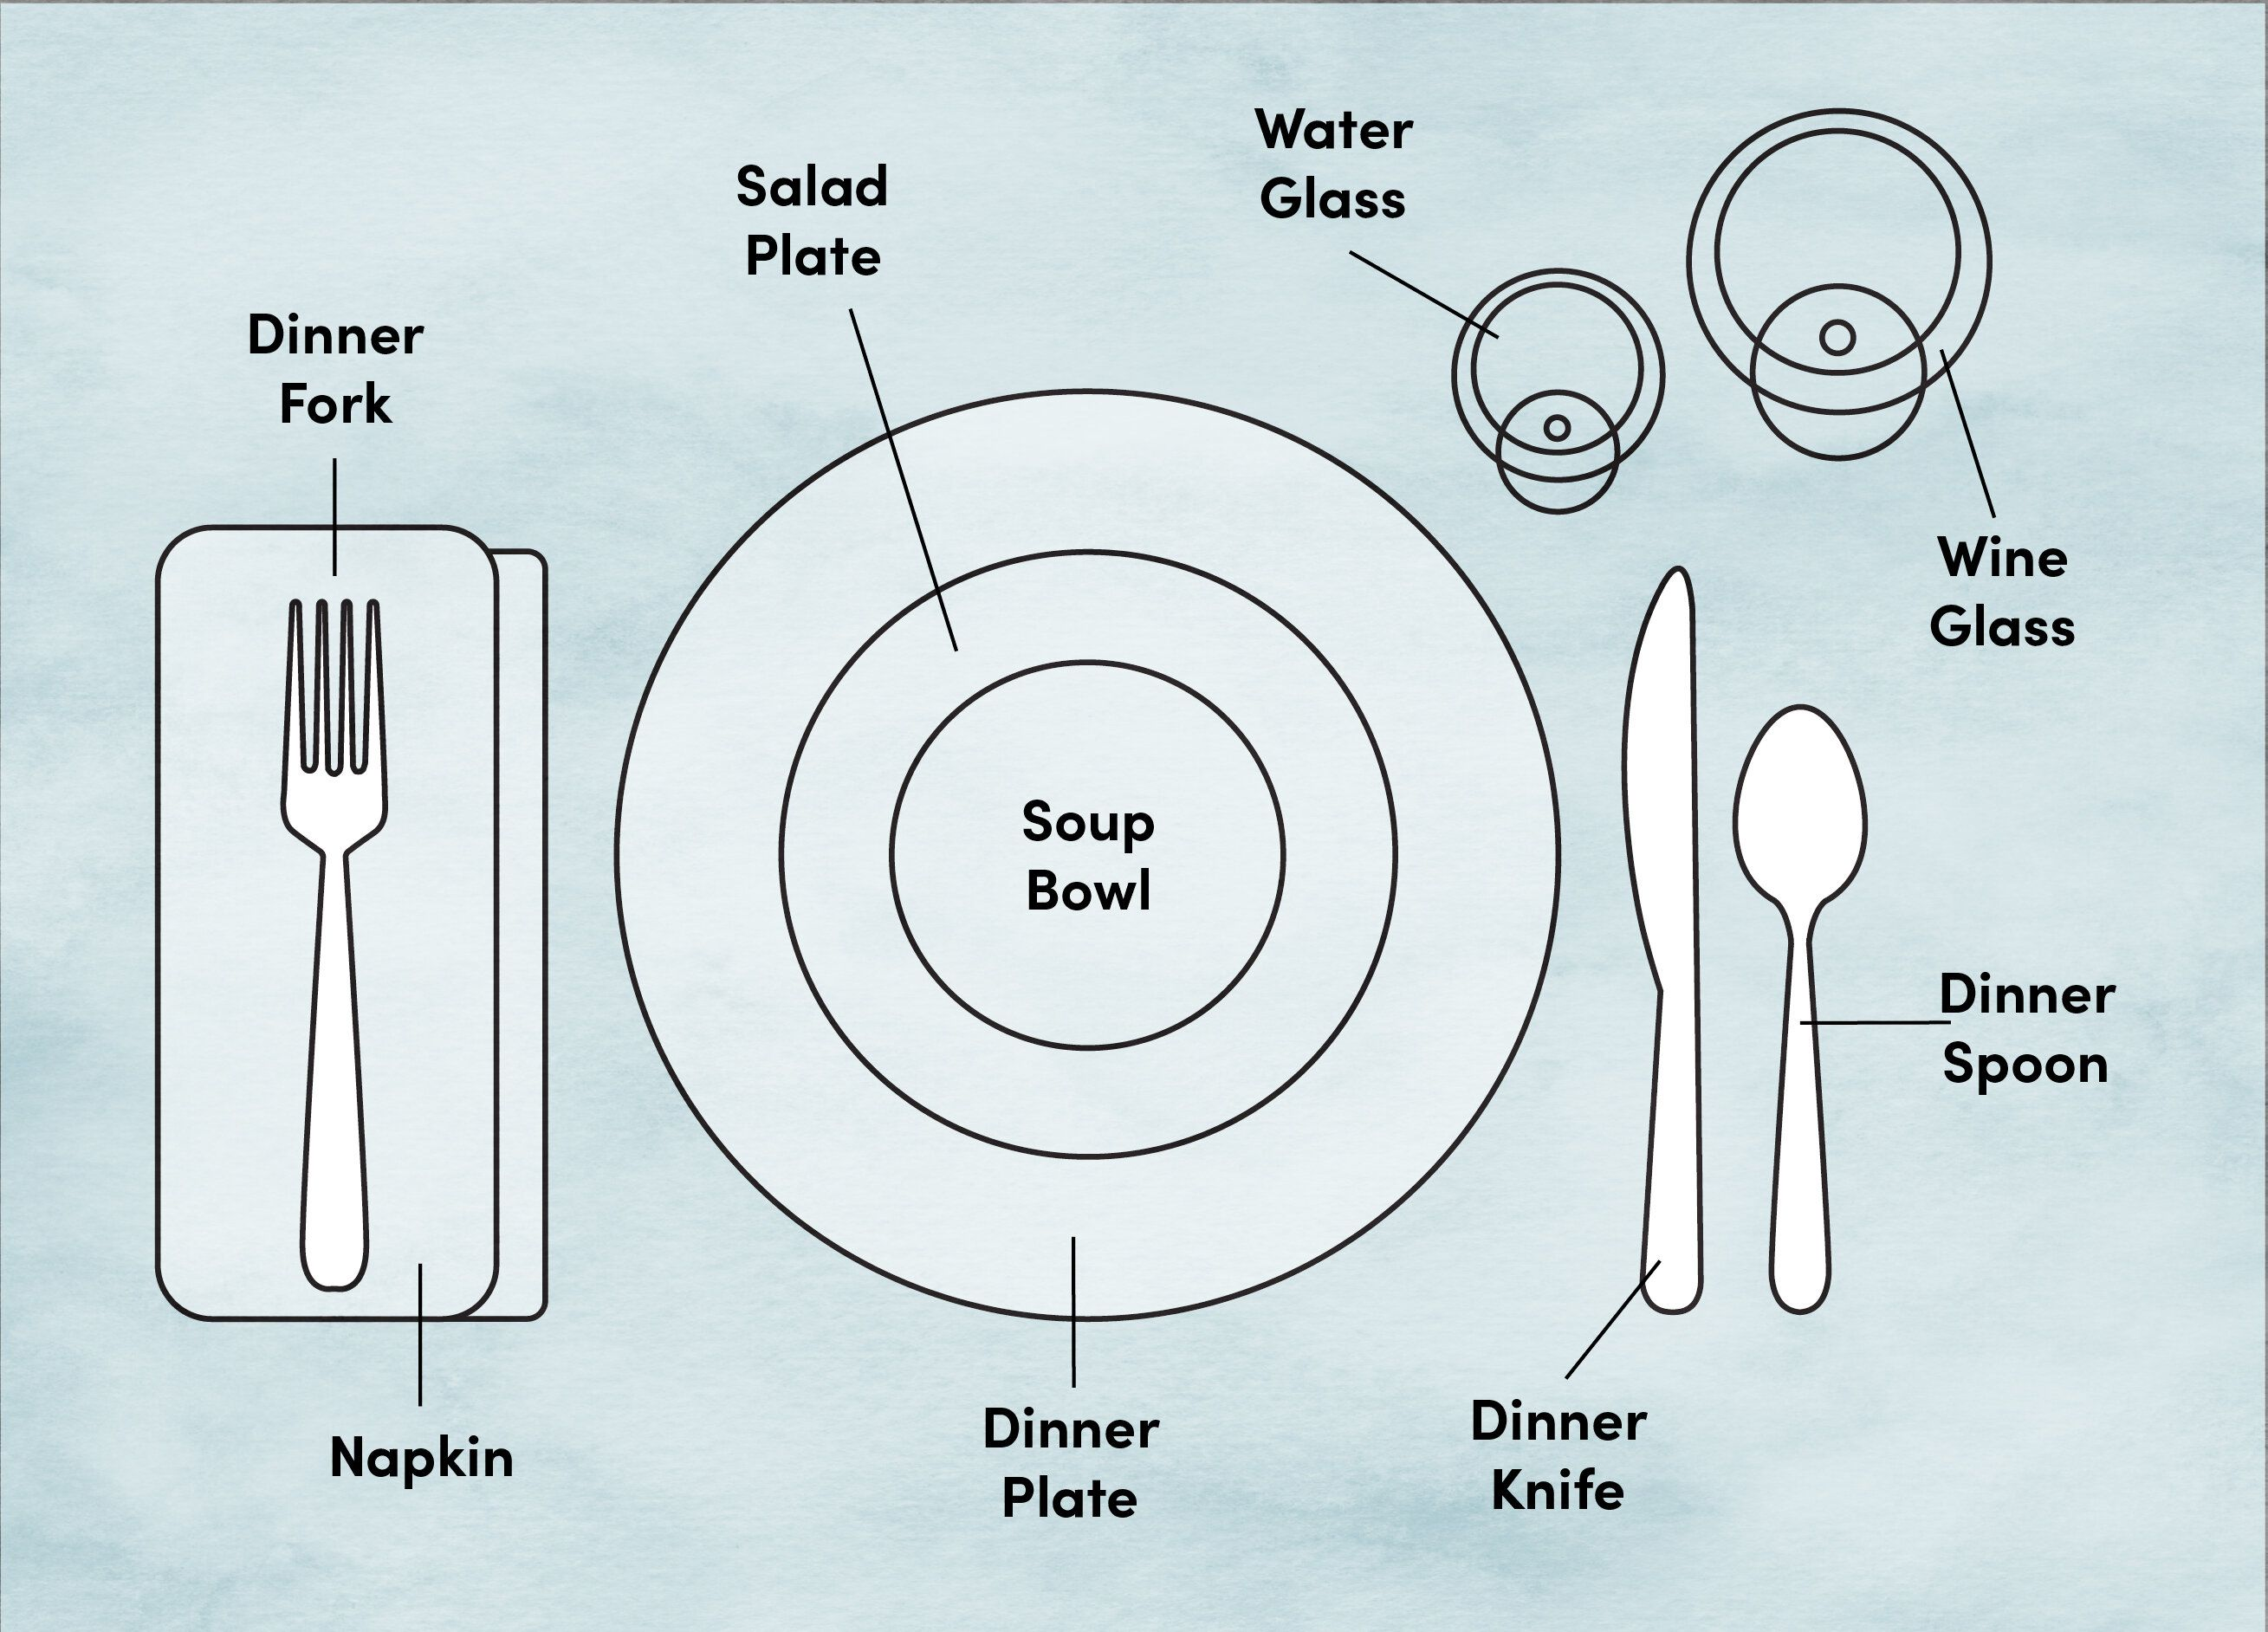 Etiquette Training Proper Place And Table Setting Diagram Wayfair Table Setting Diagram Proper Table Setting Dining Etiquette